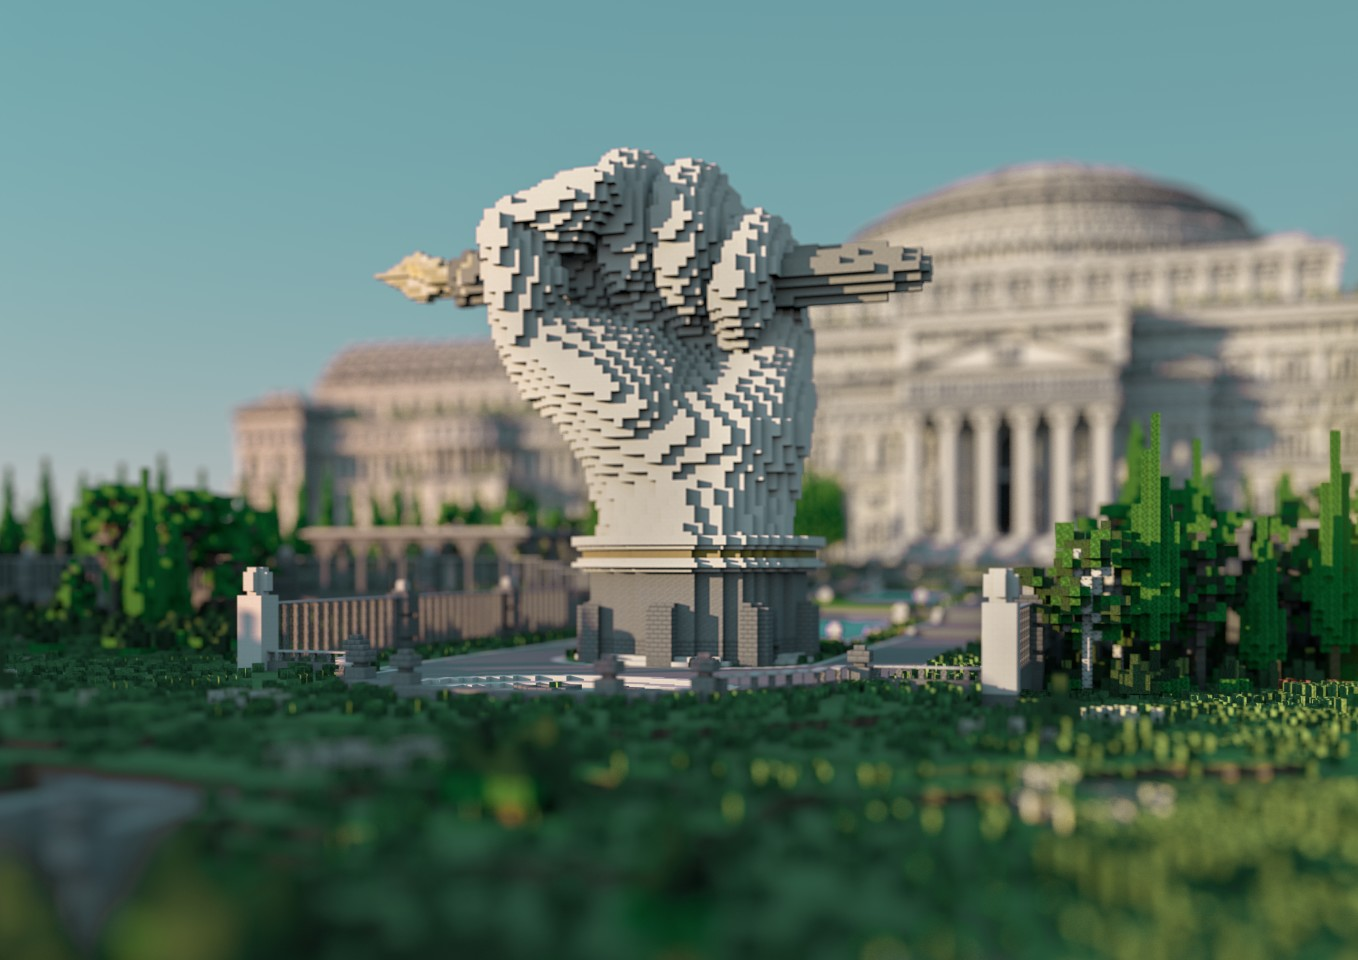 The Uncensored Library is shortlisted in the Digital category. It was designed by Reporters Without Borders, in collaboration with DDB Germany, blockworks, MediaMonks, and The Humblebrag, and creates an uncensored library within the video game Minecraft, allowing people to access censored documents and reports